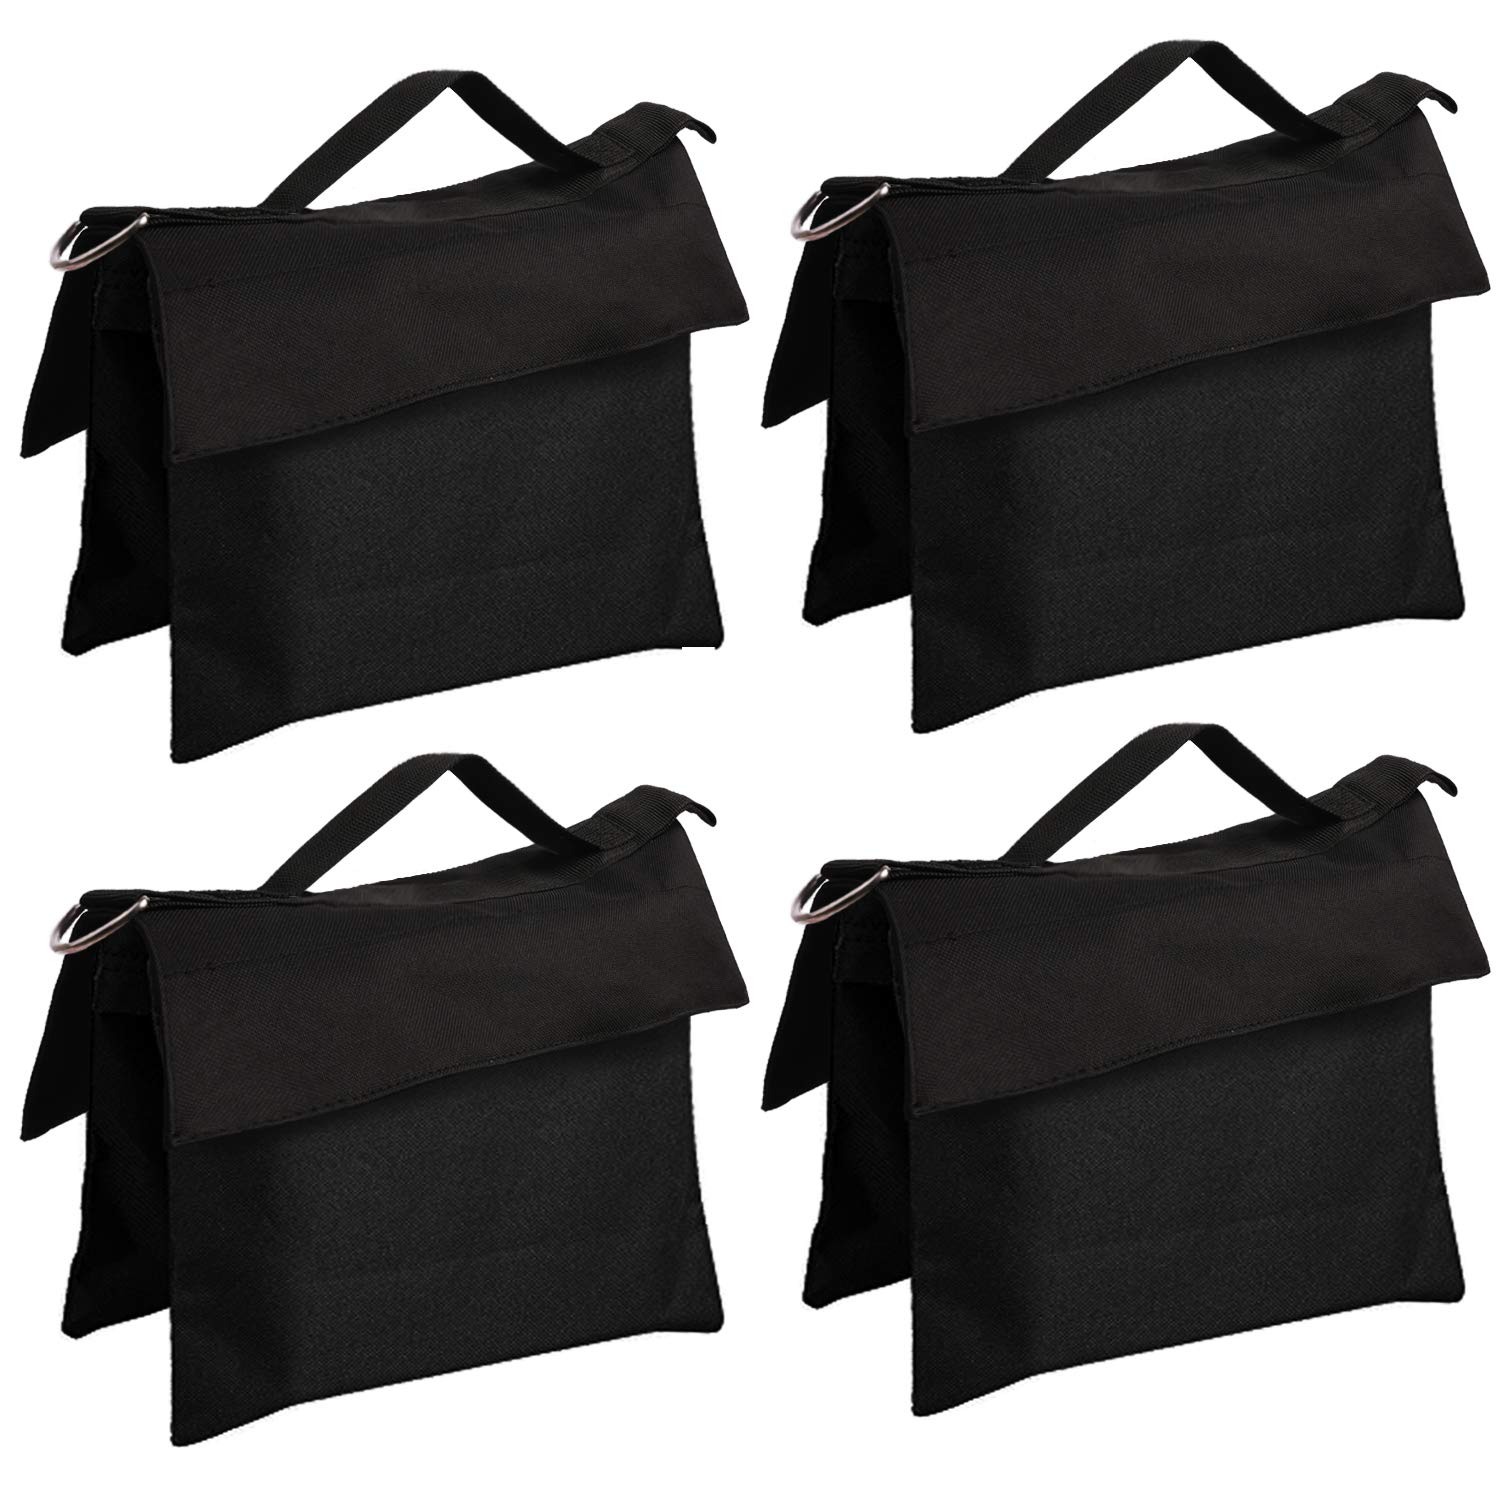 ABCCANOPY Sandbag Saddlebag Design 4 Weight Bags for Photo Video Studio Stand, (New Type of Black-4pcs) by ABCCANOPY